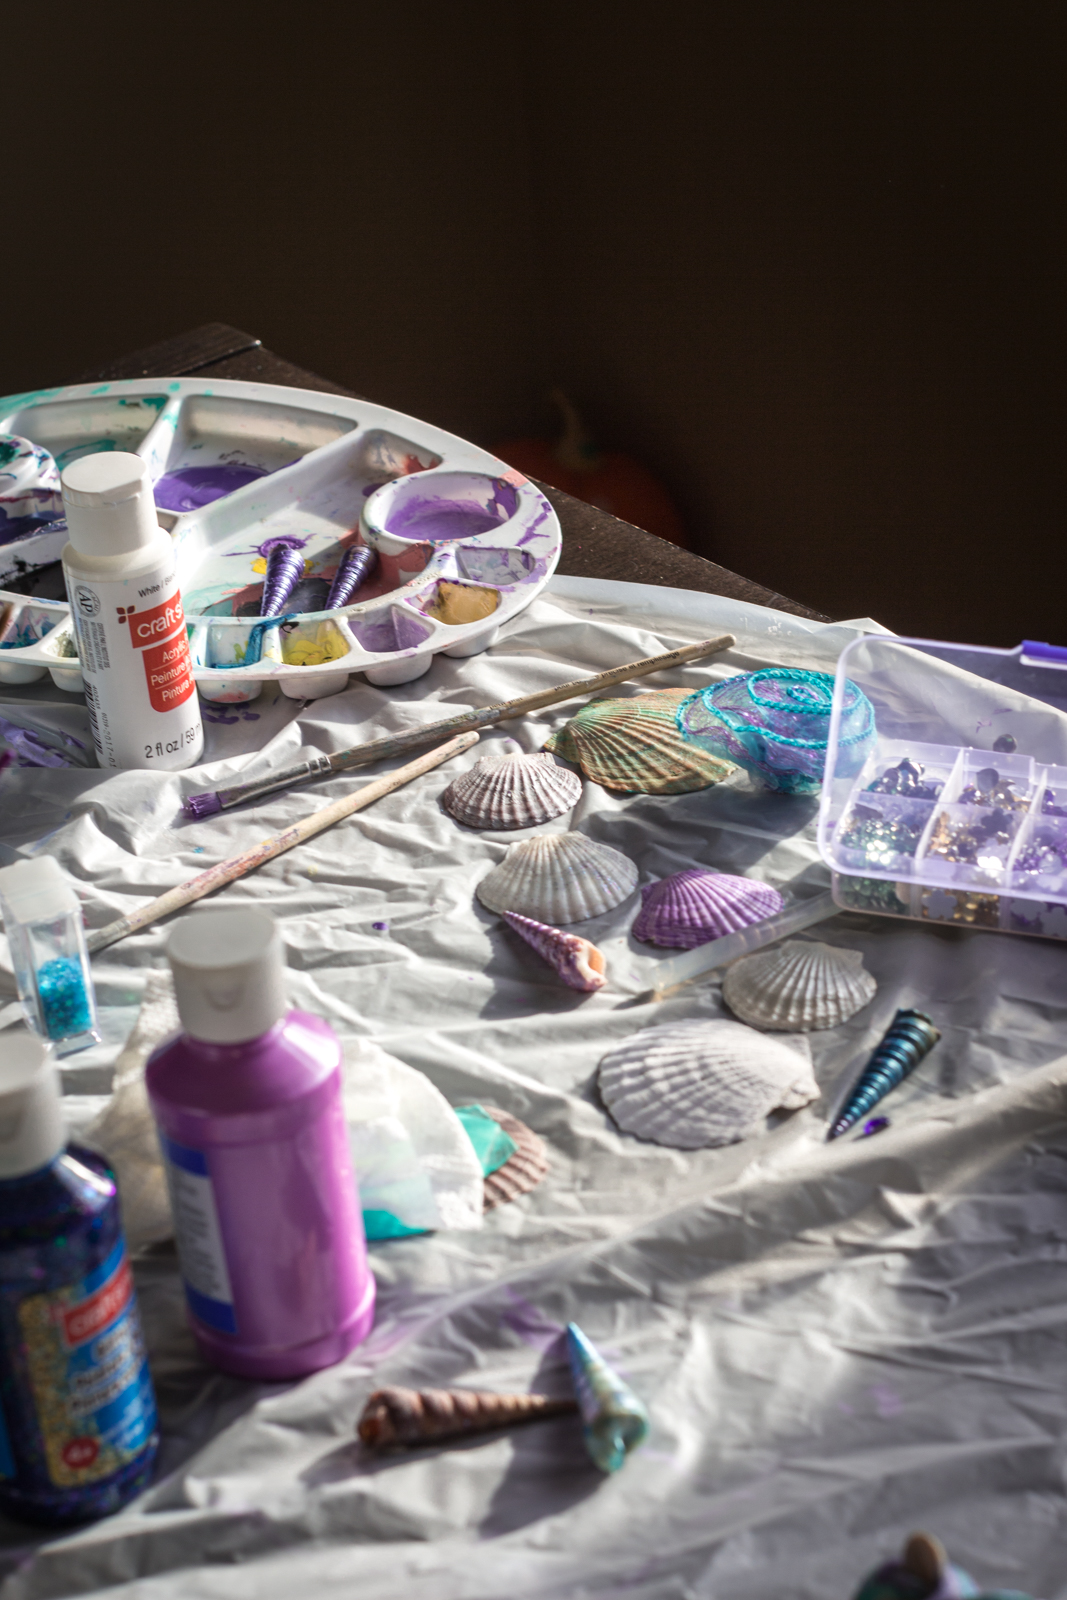 Seashells that were collected during our summer vacation getting painted.